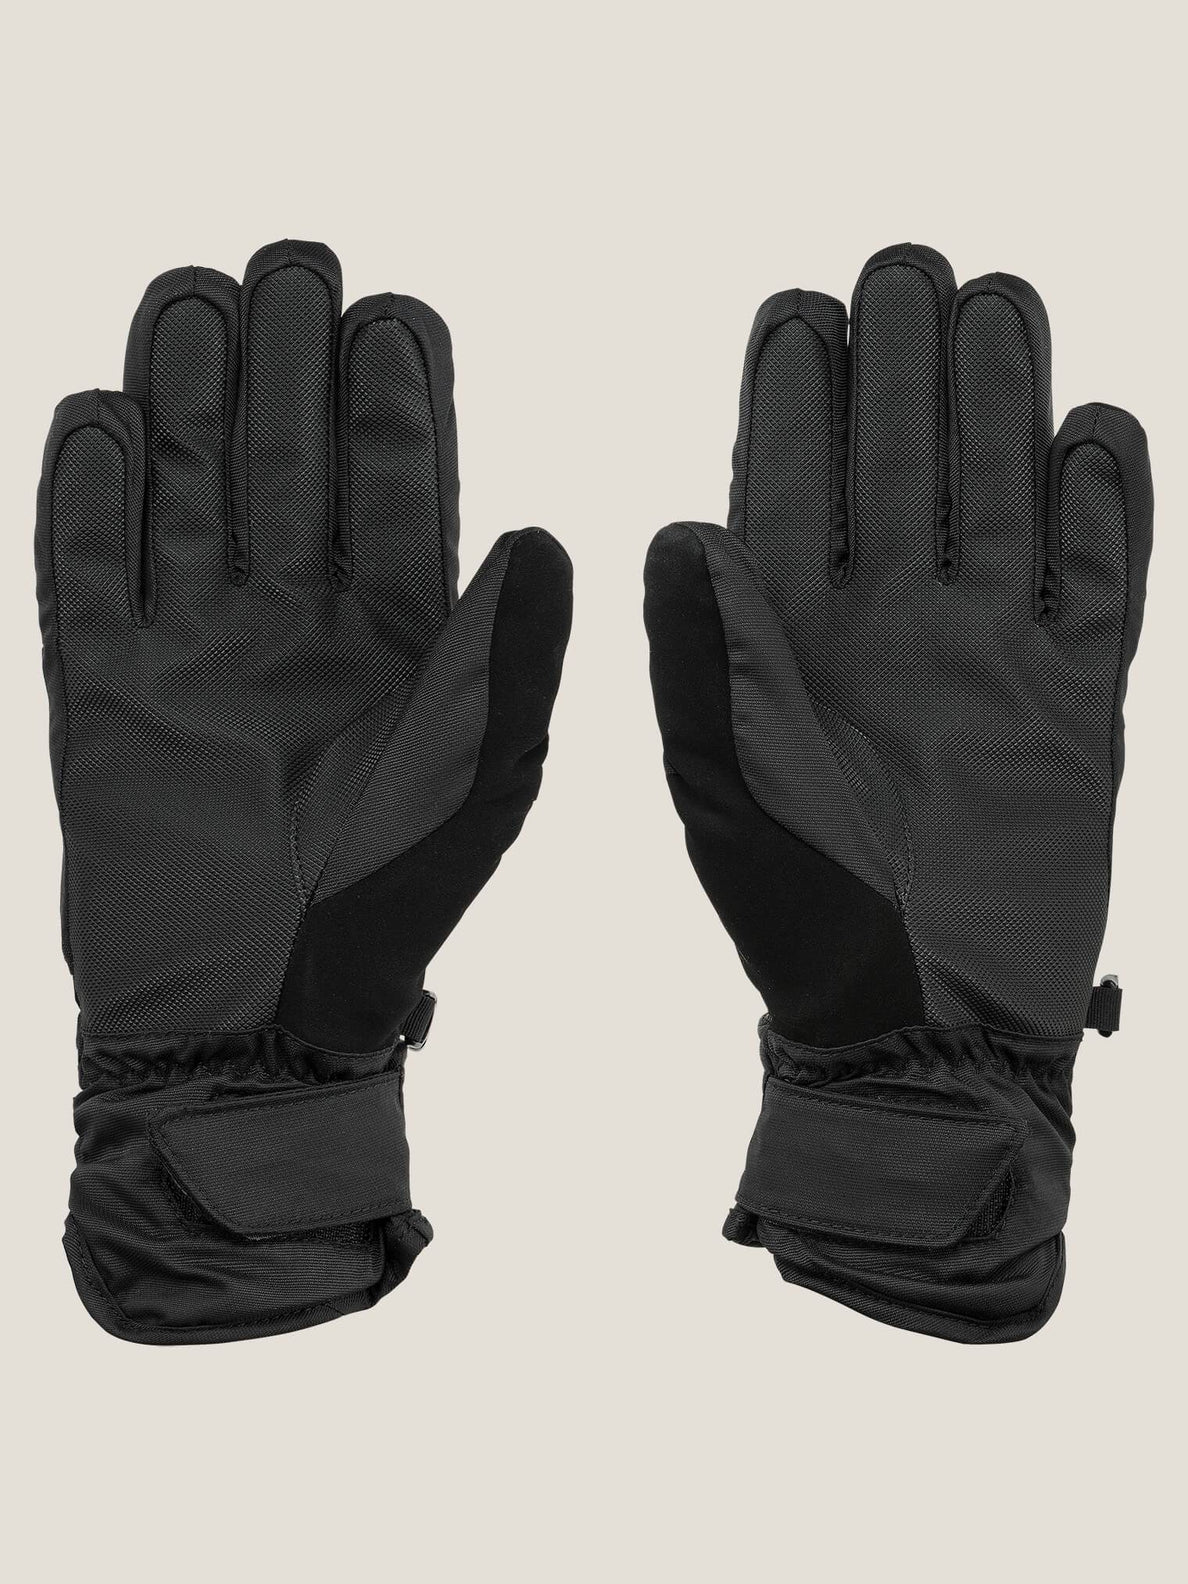 Tonic Glove In Black, Back View